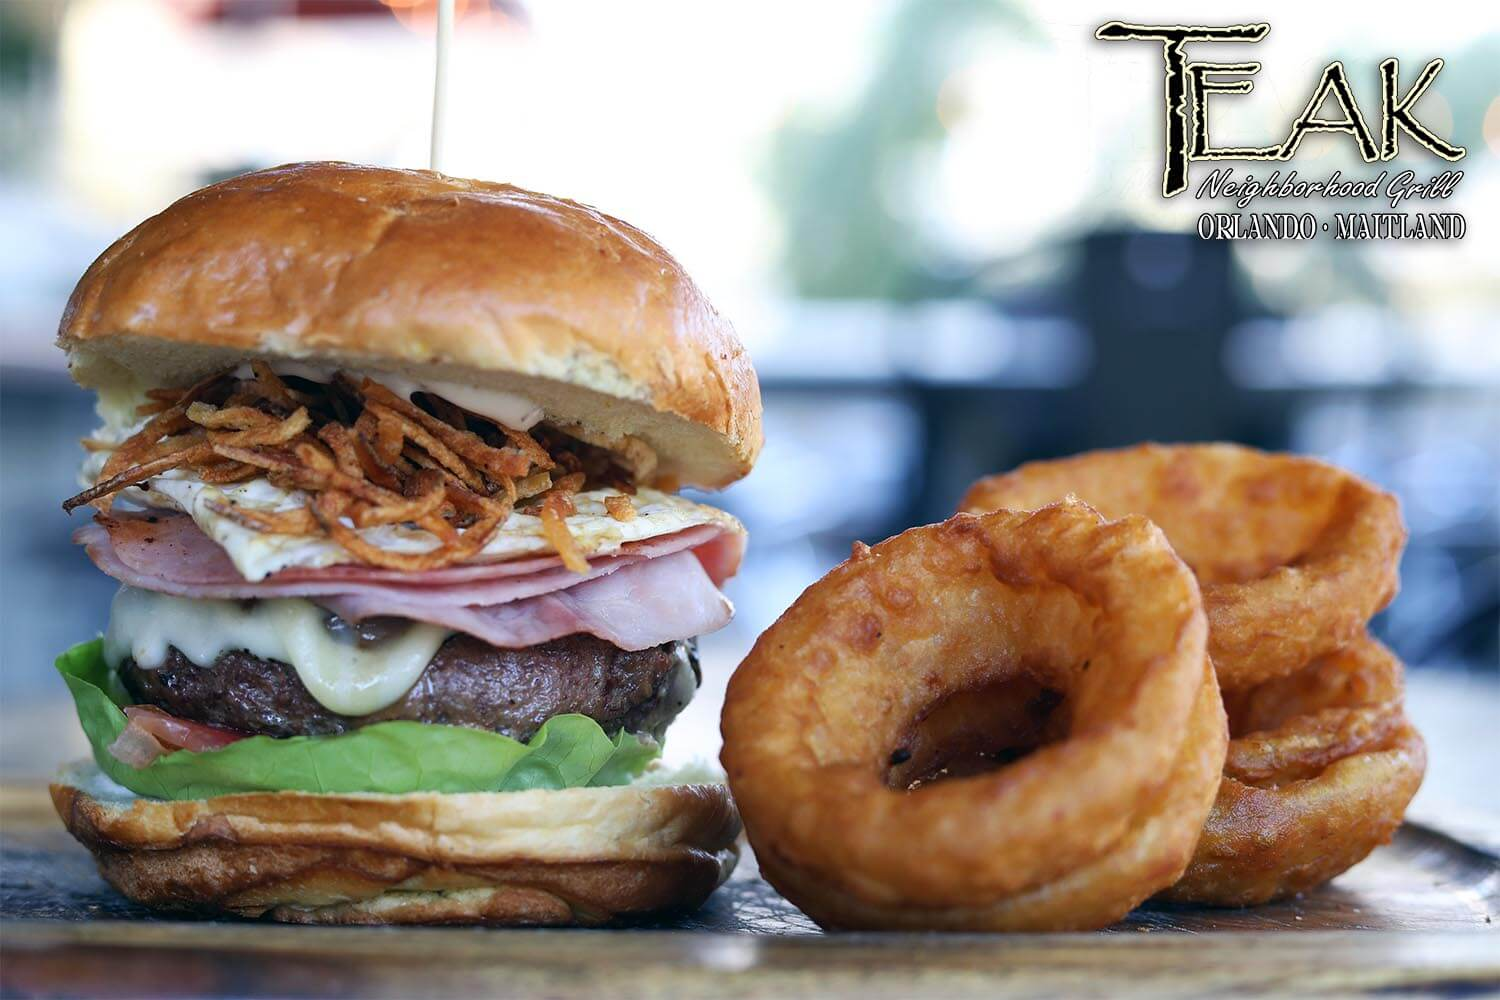 Brazilian Burger with Onion Rings